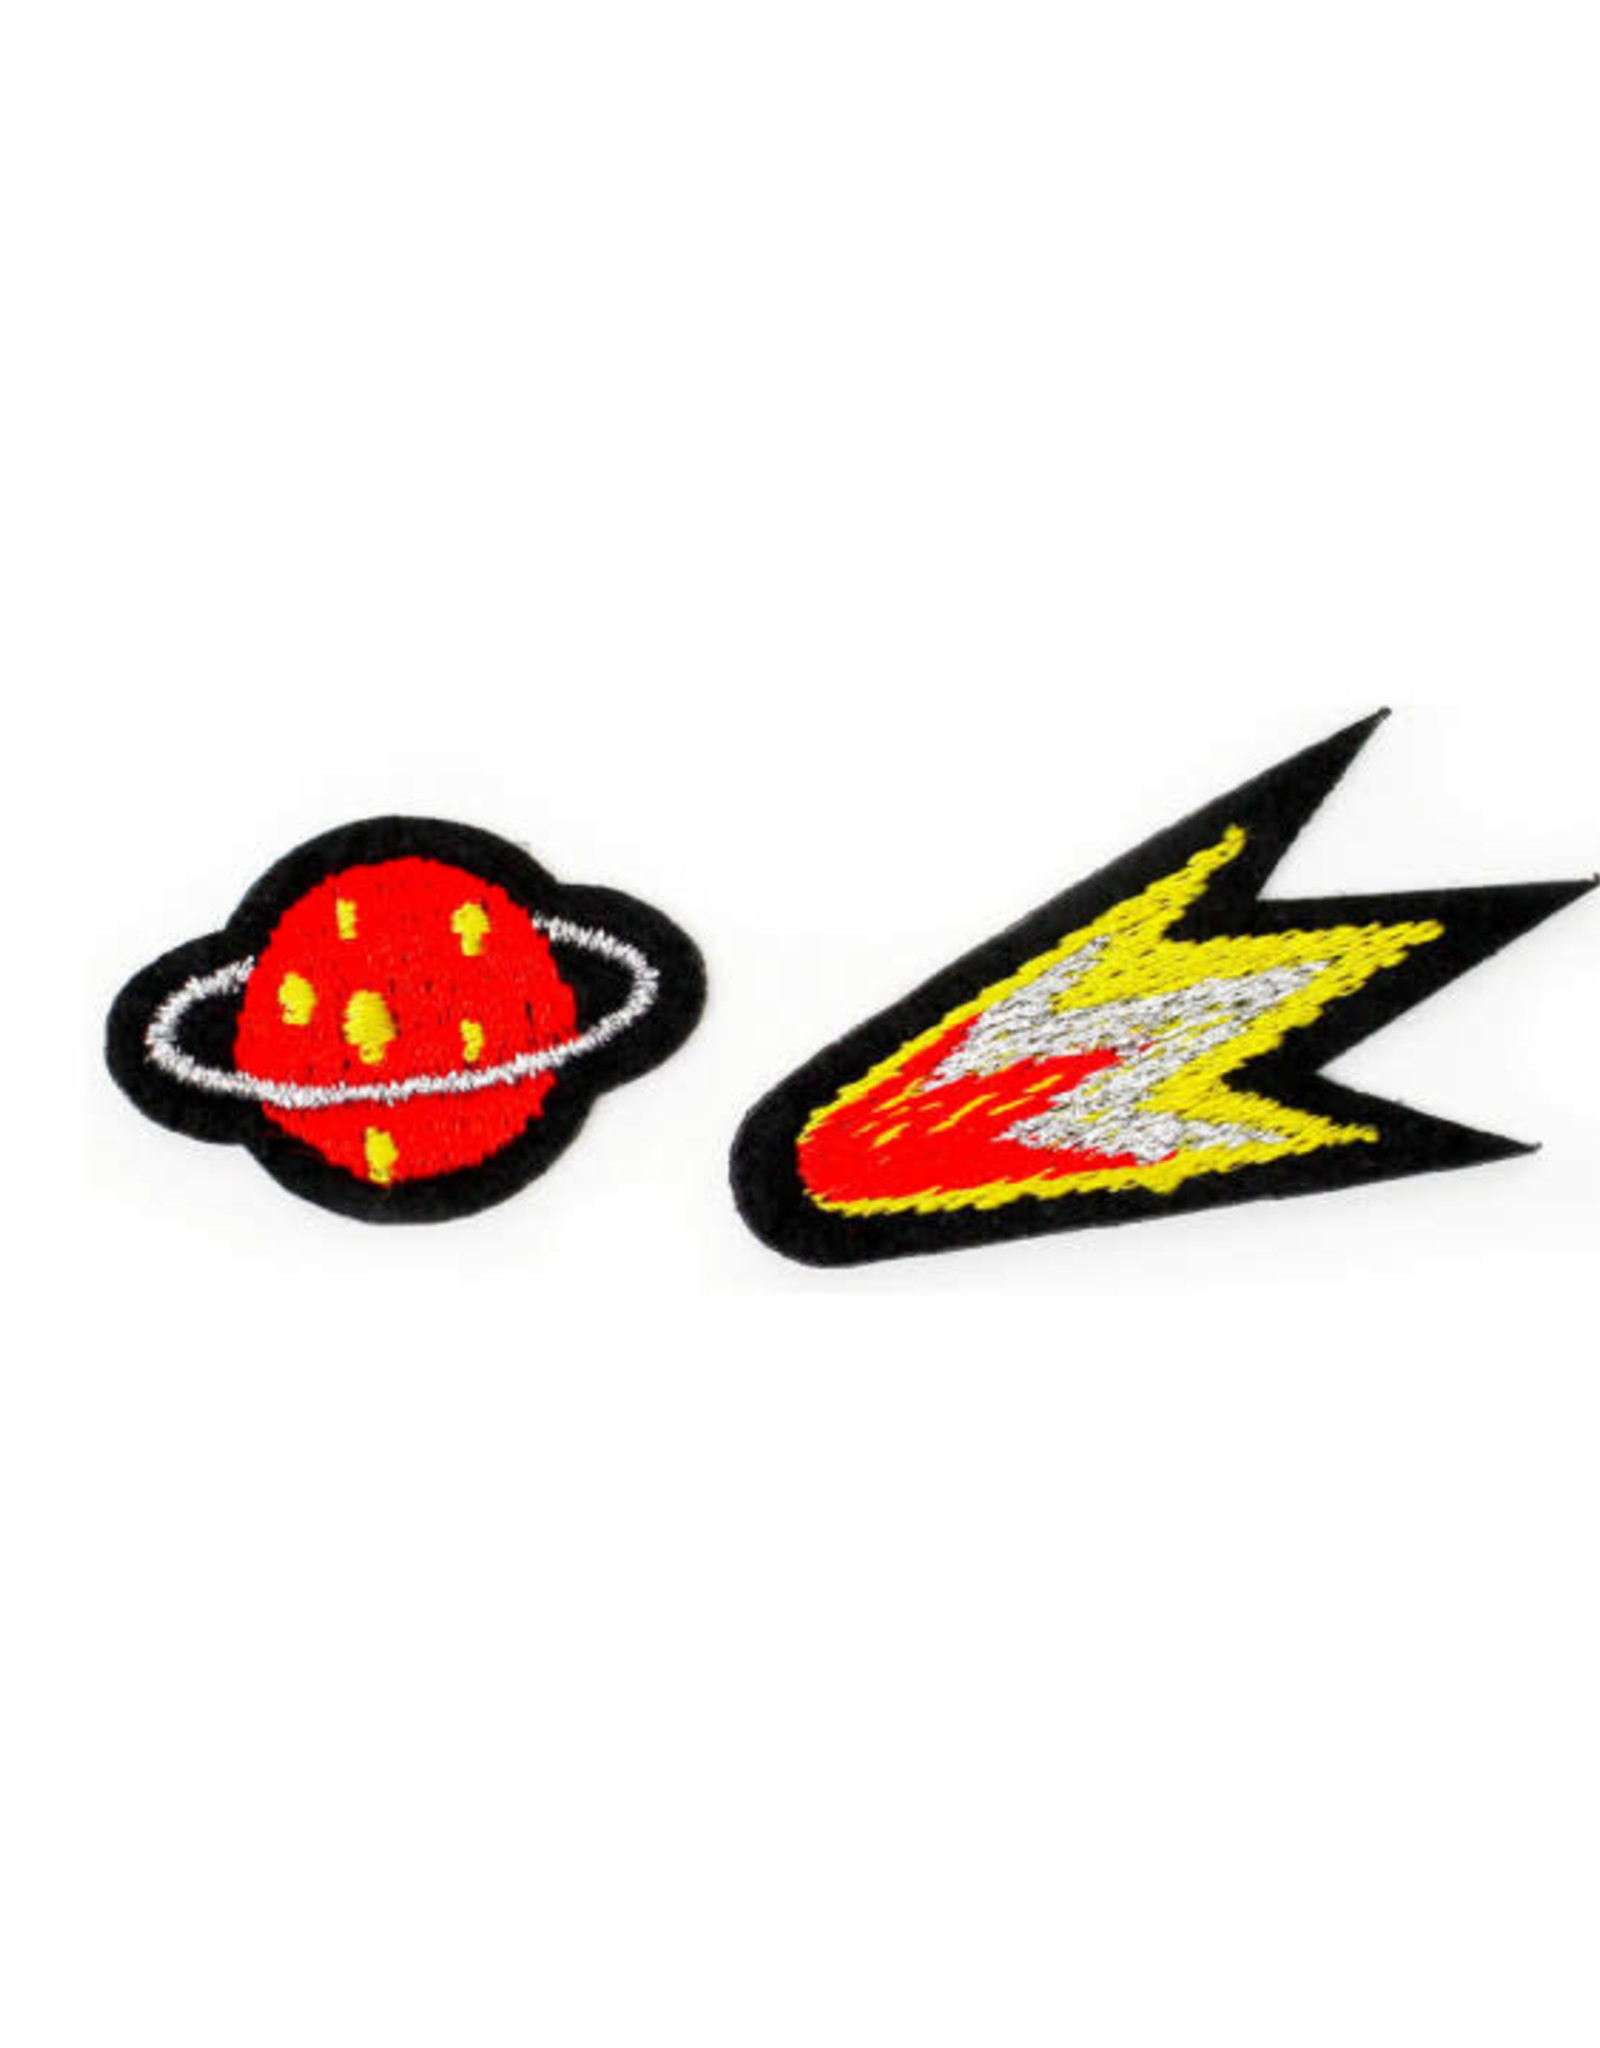 Macon&Lesquoy Patch - two patches -  comet and planet